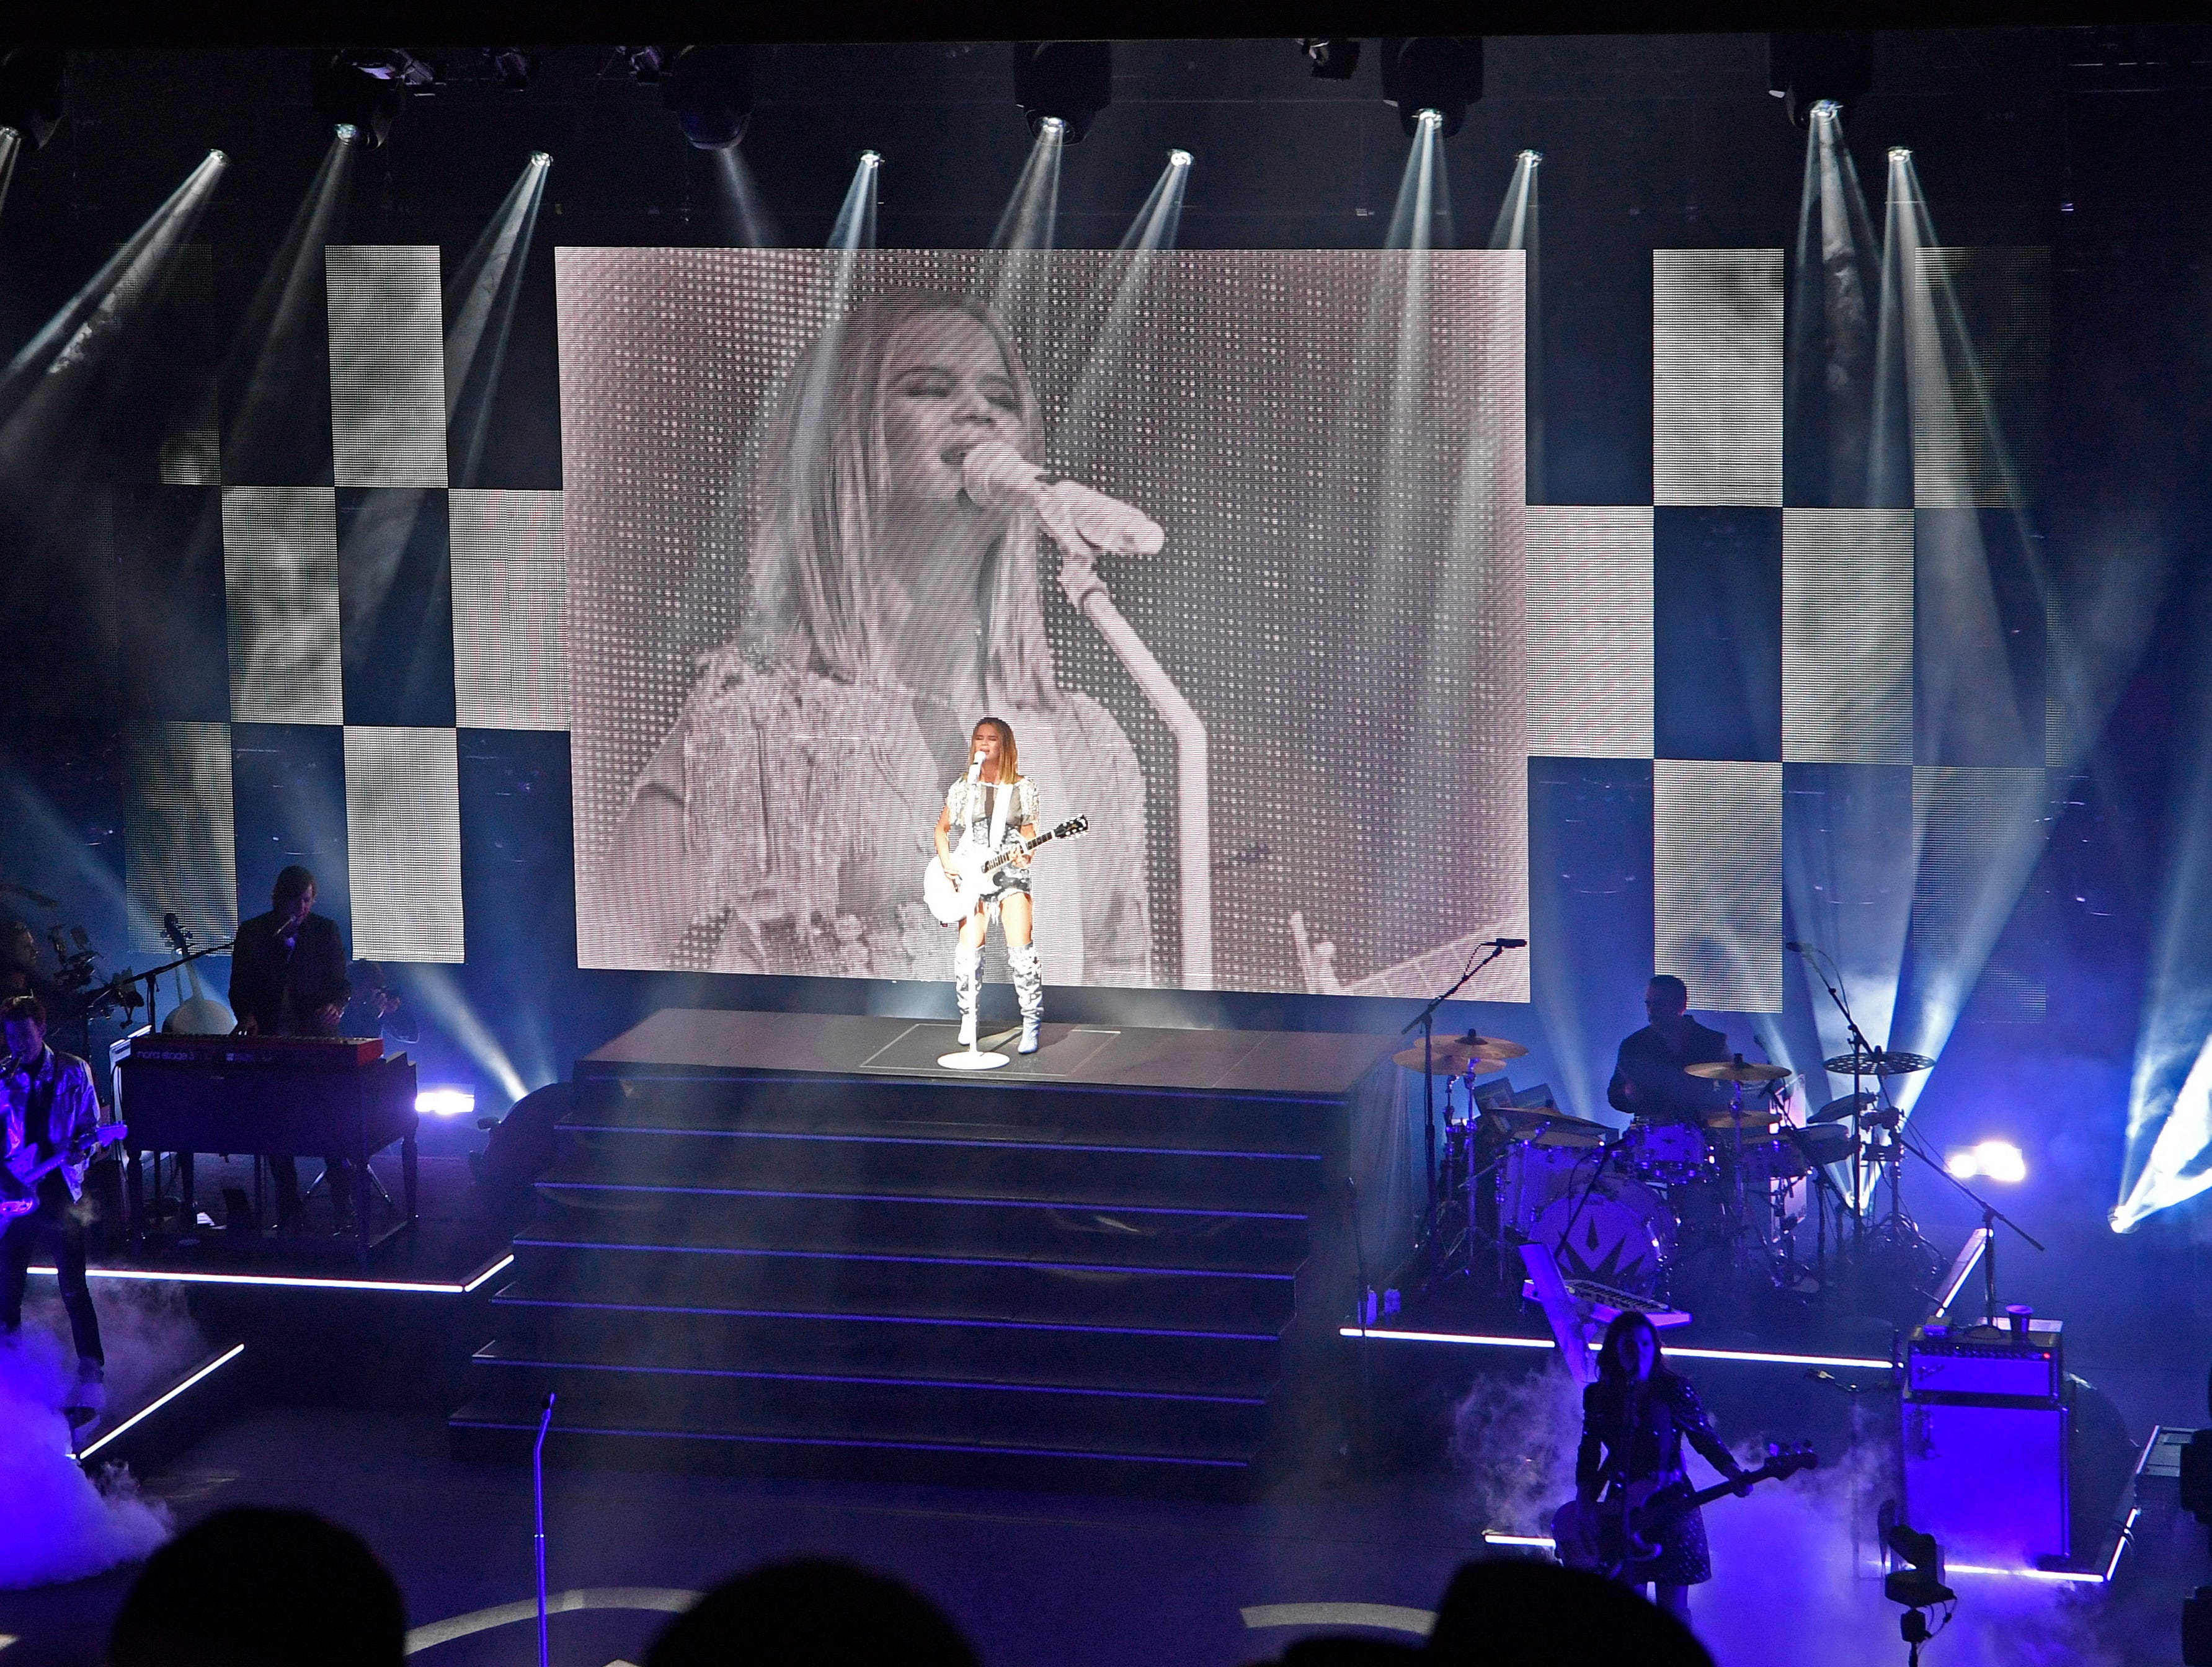 Maren Morris performs during her GIRL The World Tour 2019 at the Ryman Wednesday, March 13, 2019, in Nashville, Tenn.